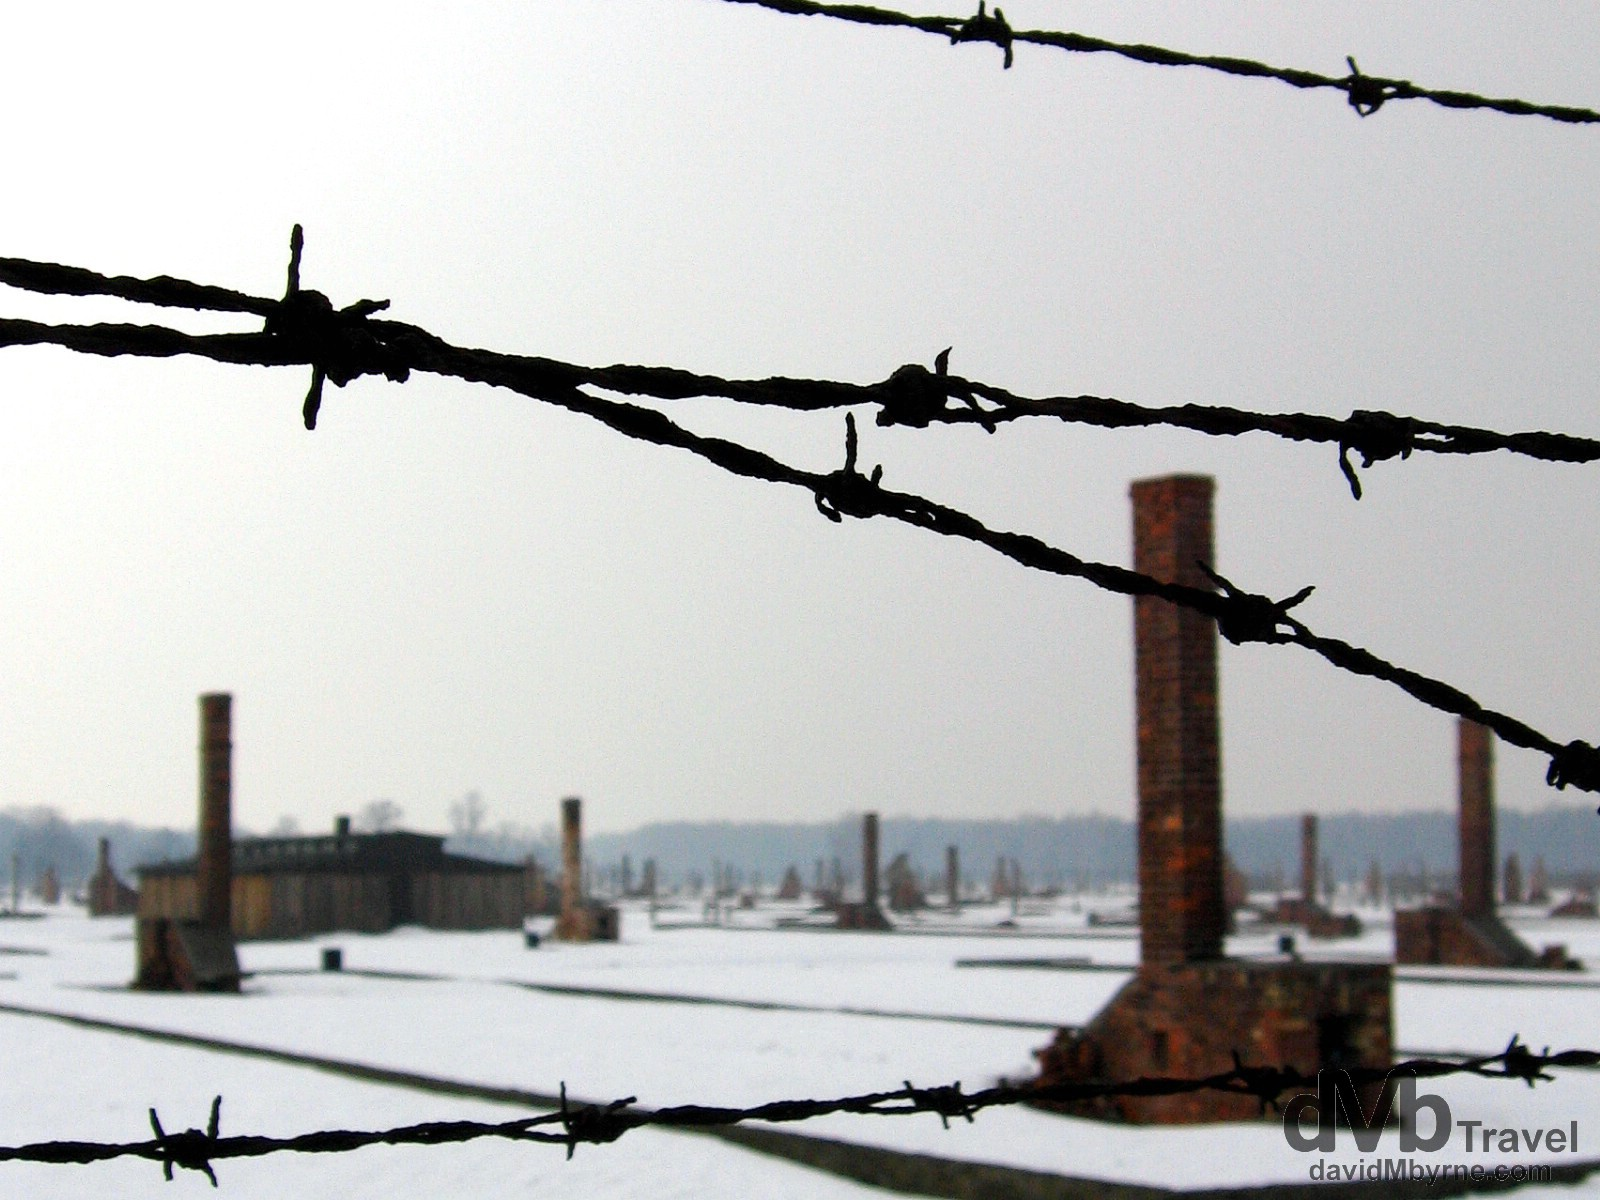 Remnants of the horrific past as seen through the fencing of the Birkenau Concentration Camp in Brzezinka, Poland. March 7, 2006,